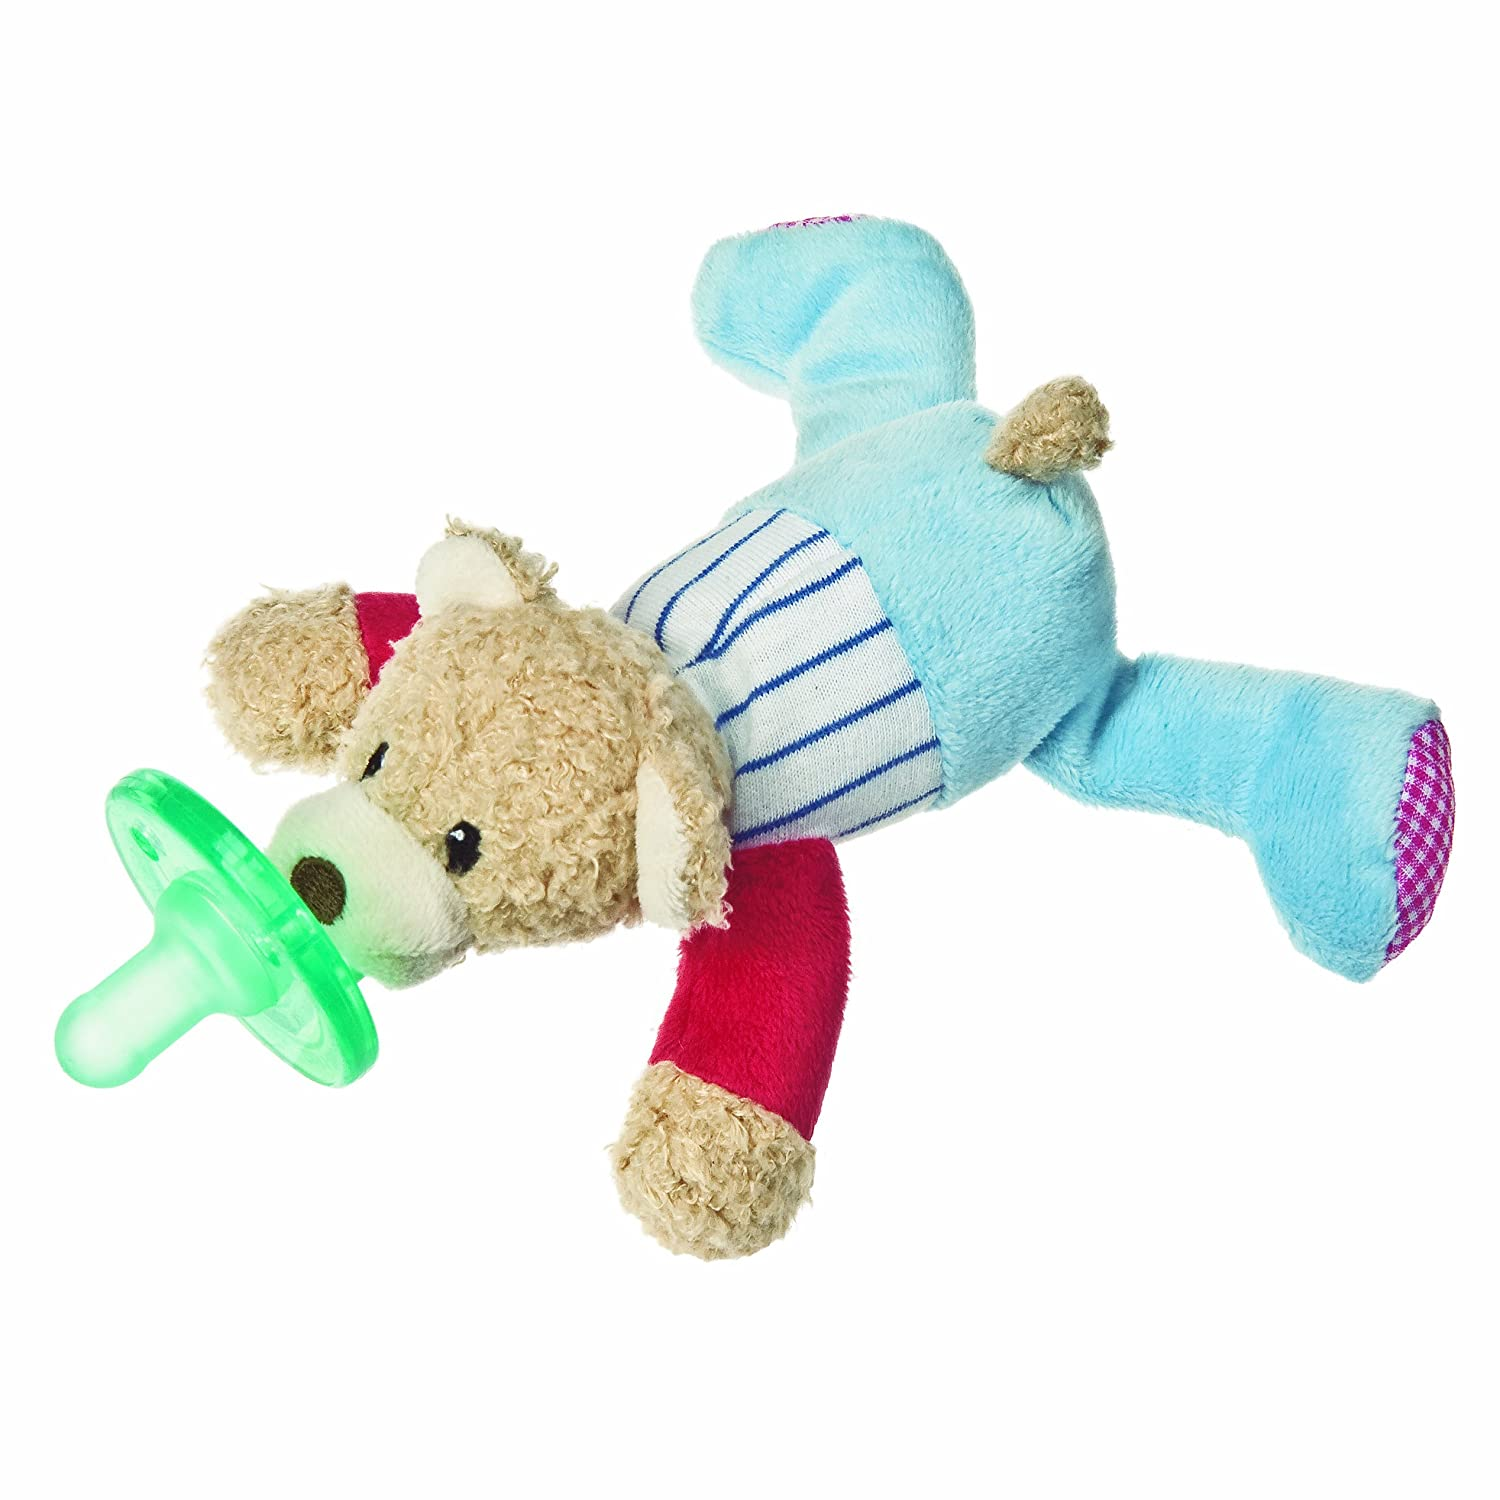 Amazon.com: Wubbanub felpa Chupete Toy, Little Mvp ...